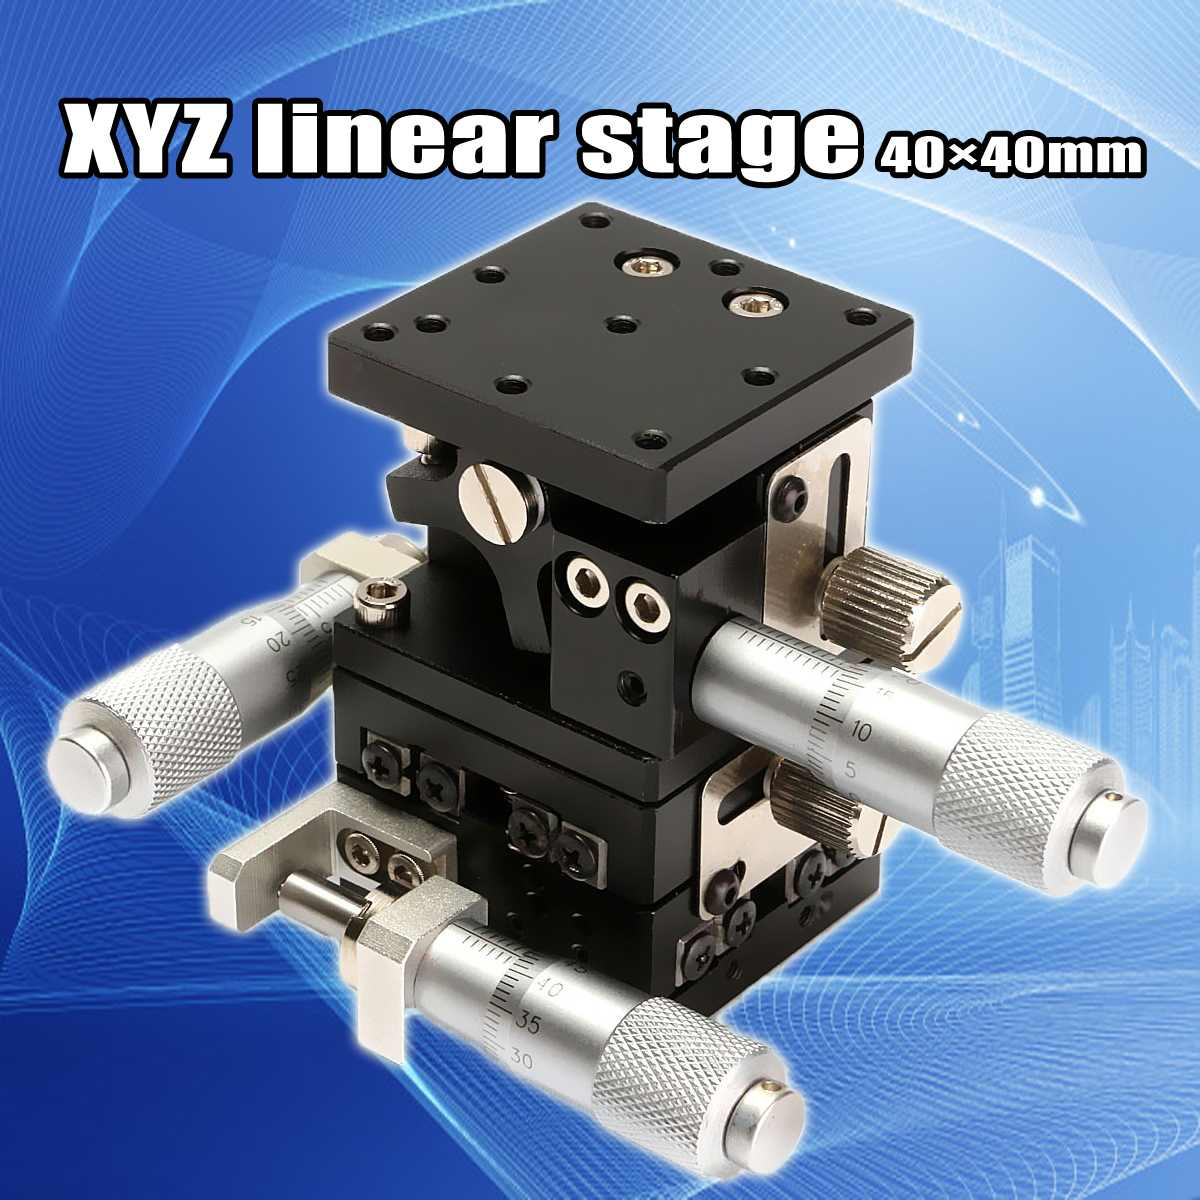 XYZ Linear Stage Slip 40mmX40mm Cross-roller Bearing Miniature Compact Left HandXYZ Linear Stage Slip 40mmX40mm Cross-roller Bearing Miniature Compact Left Hand